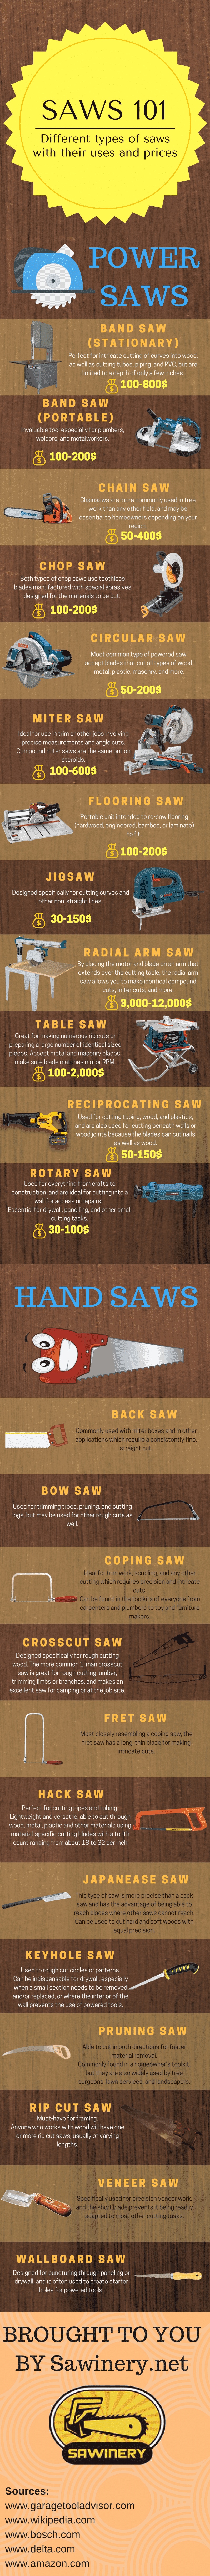 Saws 101 infographic